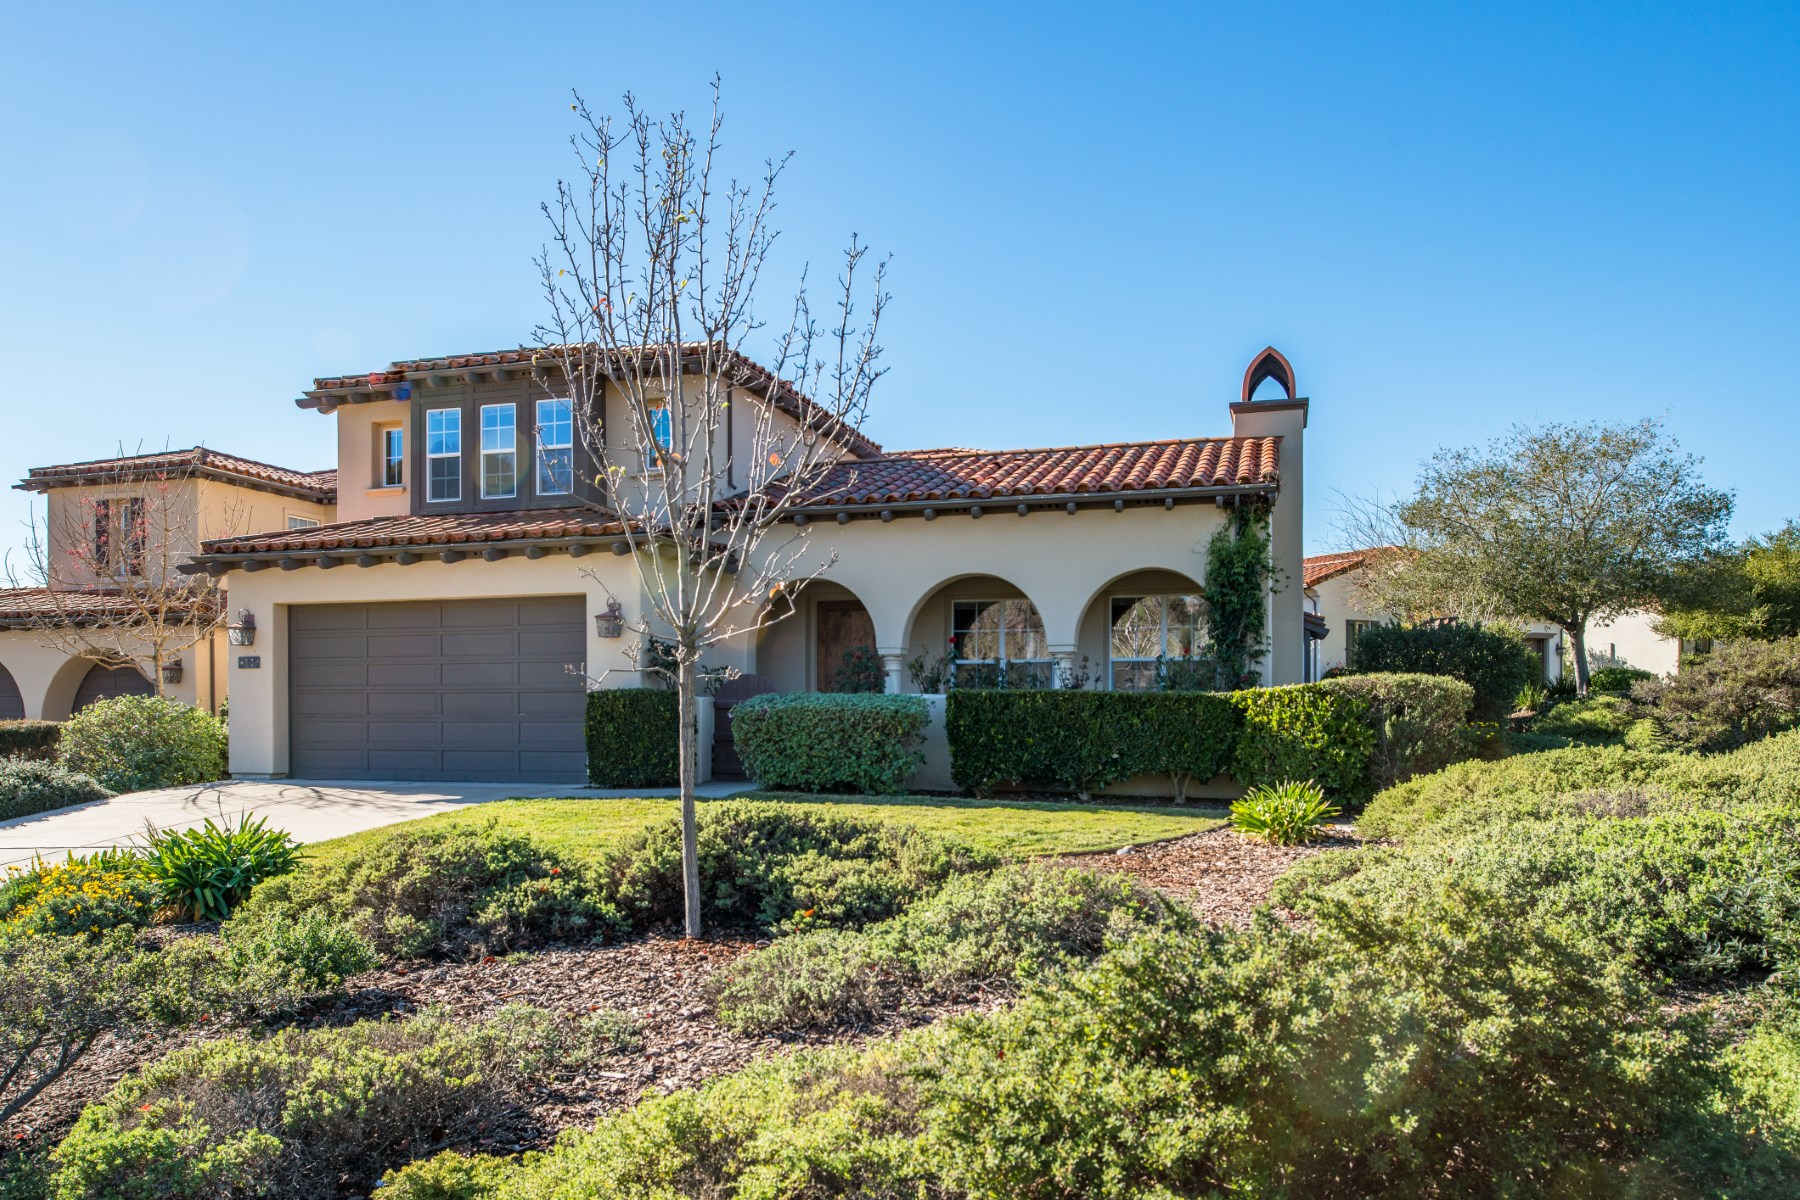 Single Family Home for Sale at Premier Pasadera Villa 306 Pasadera Drive Monterey, California 93940 United States